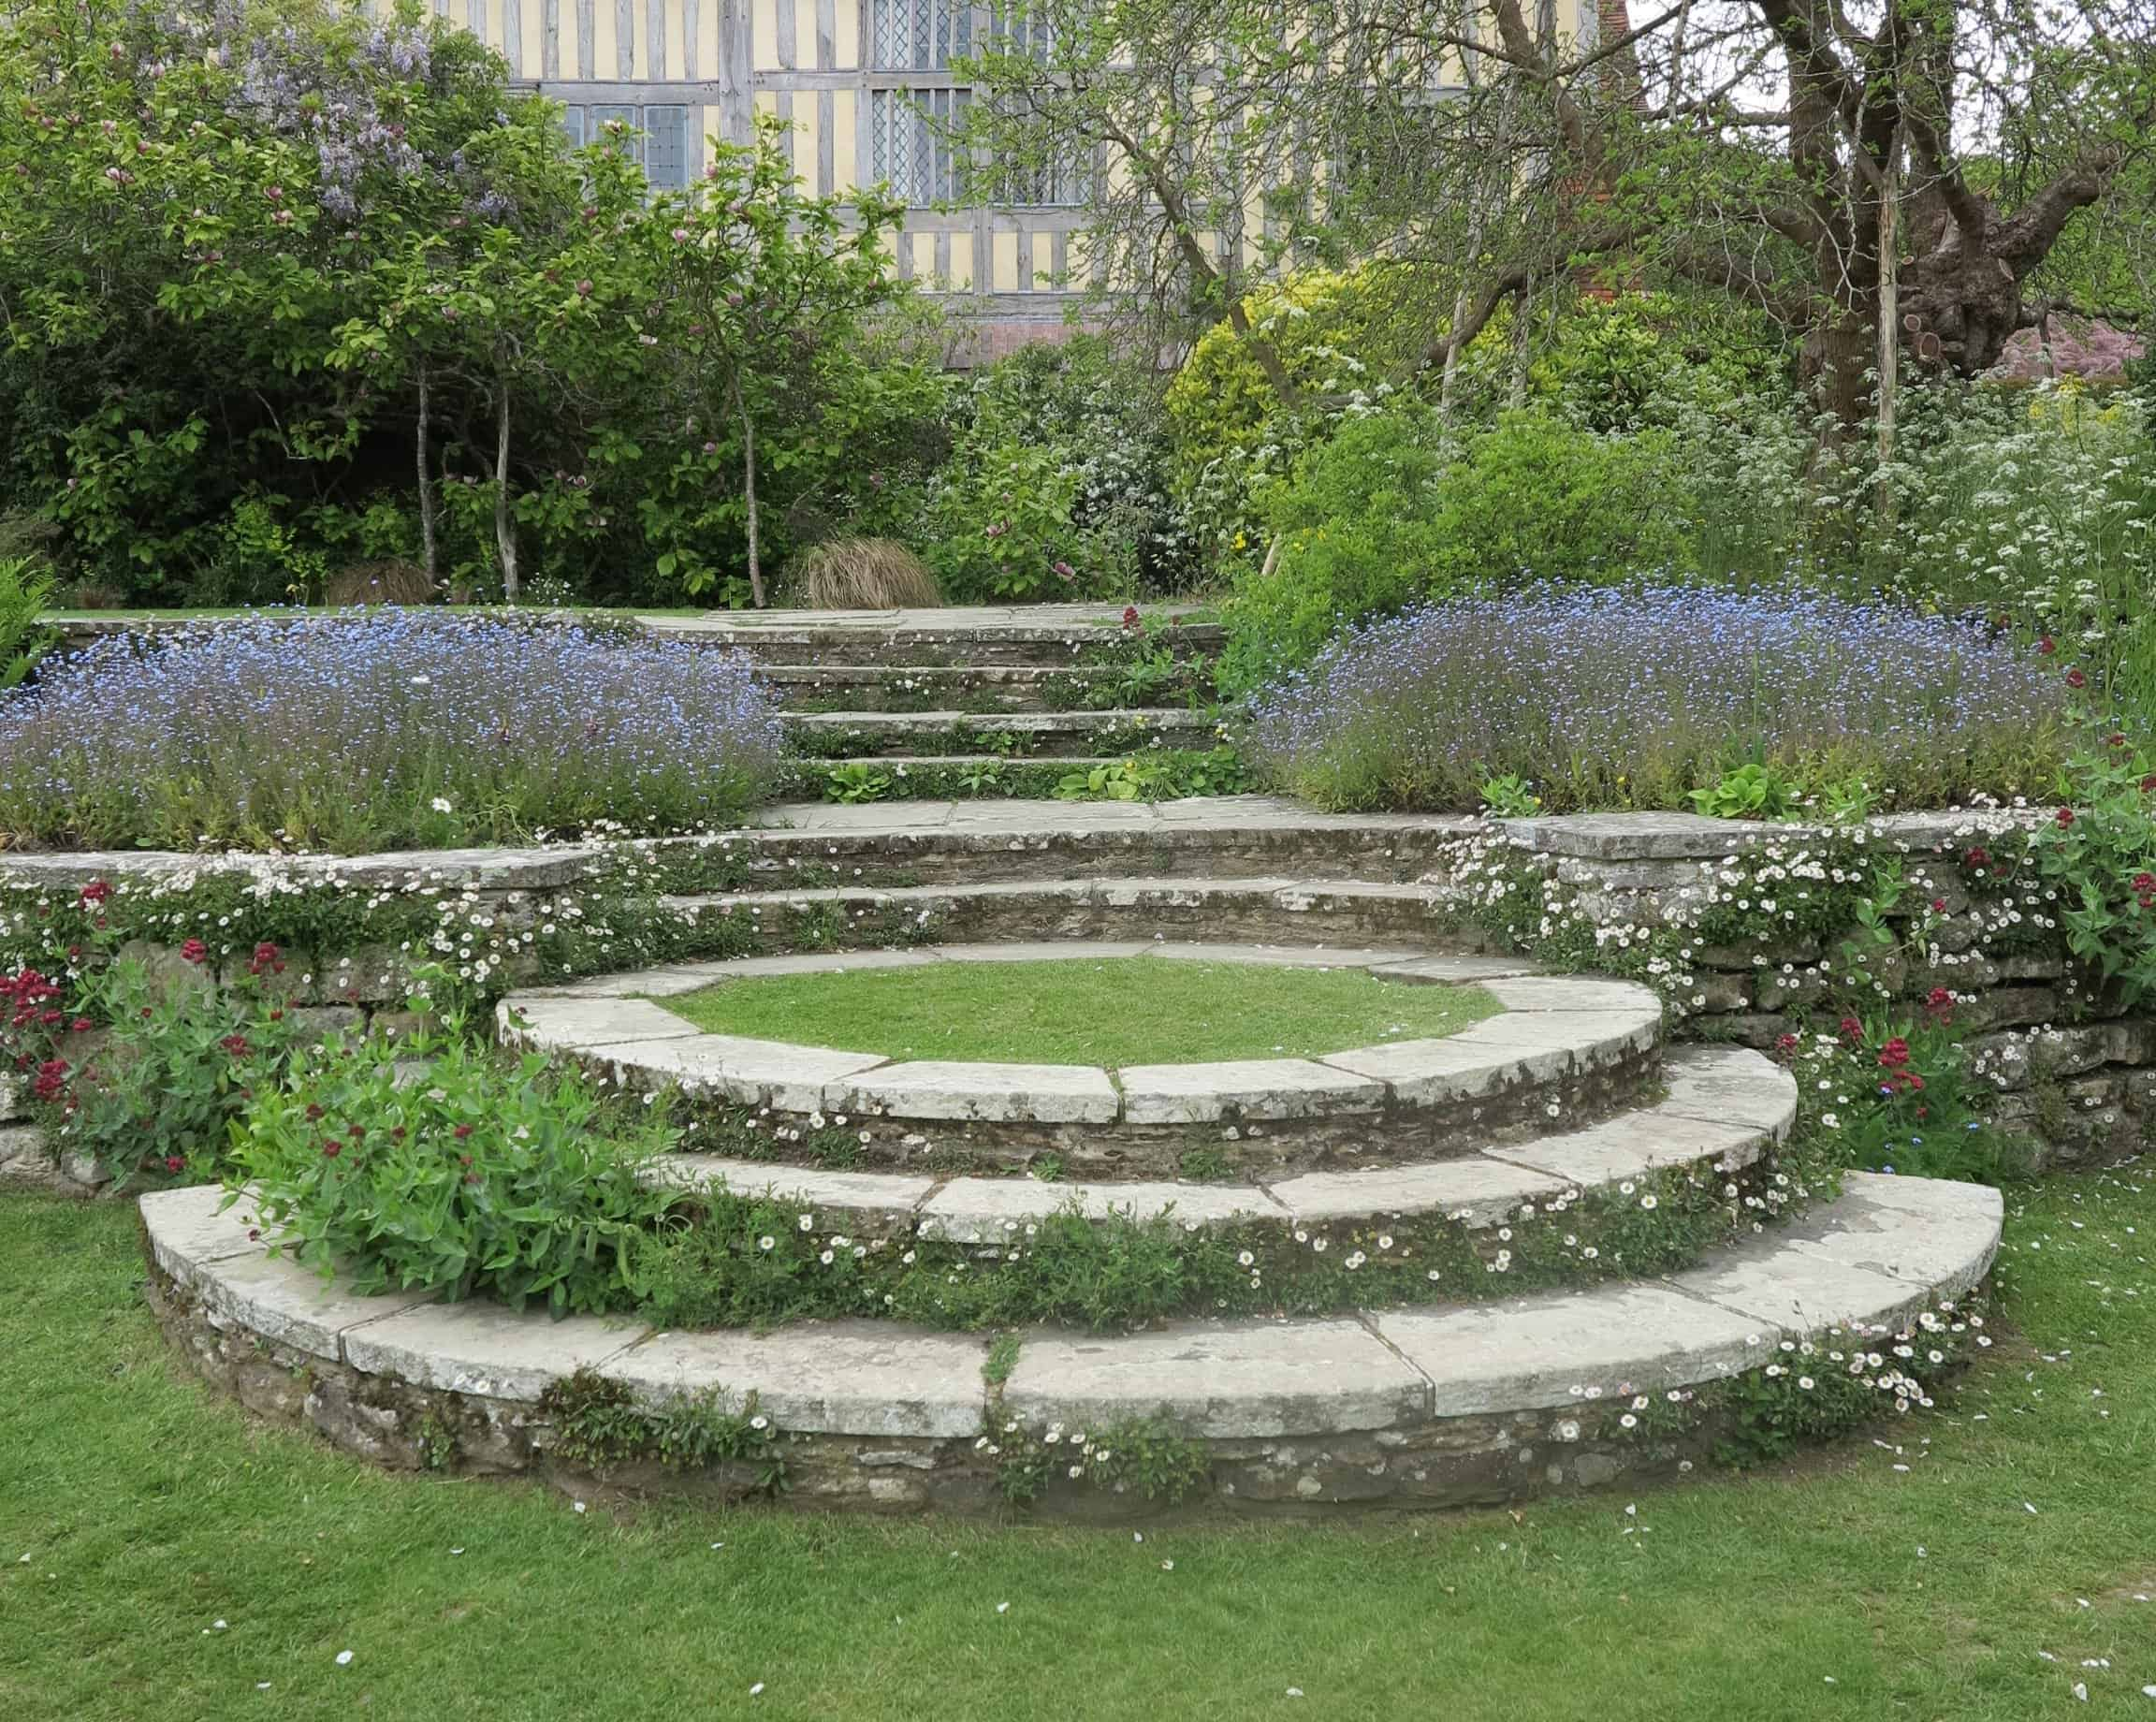 These symmetrical steps and terraces took my breath away.